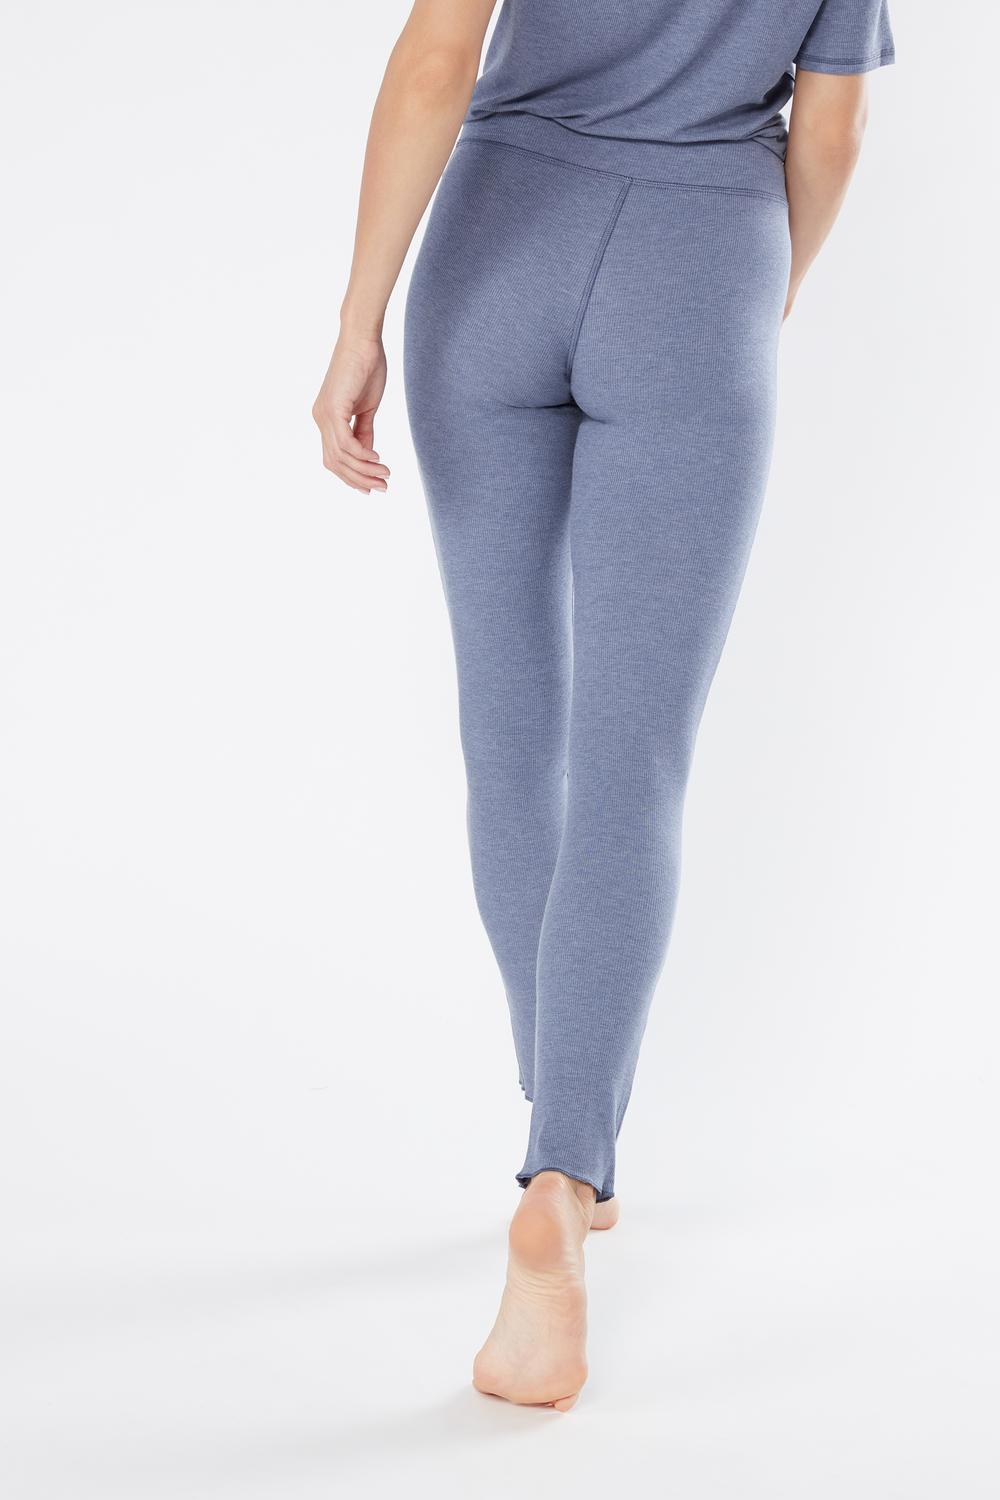 Leggings a Costine in Modal Melange